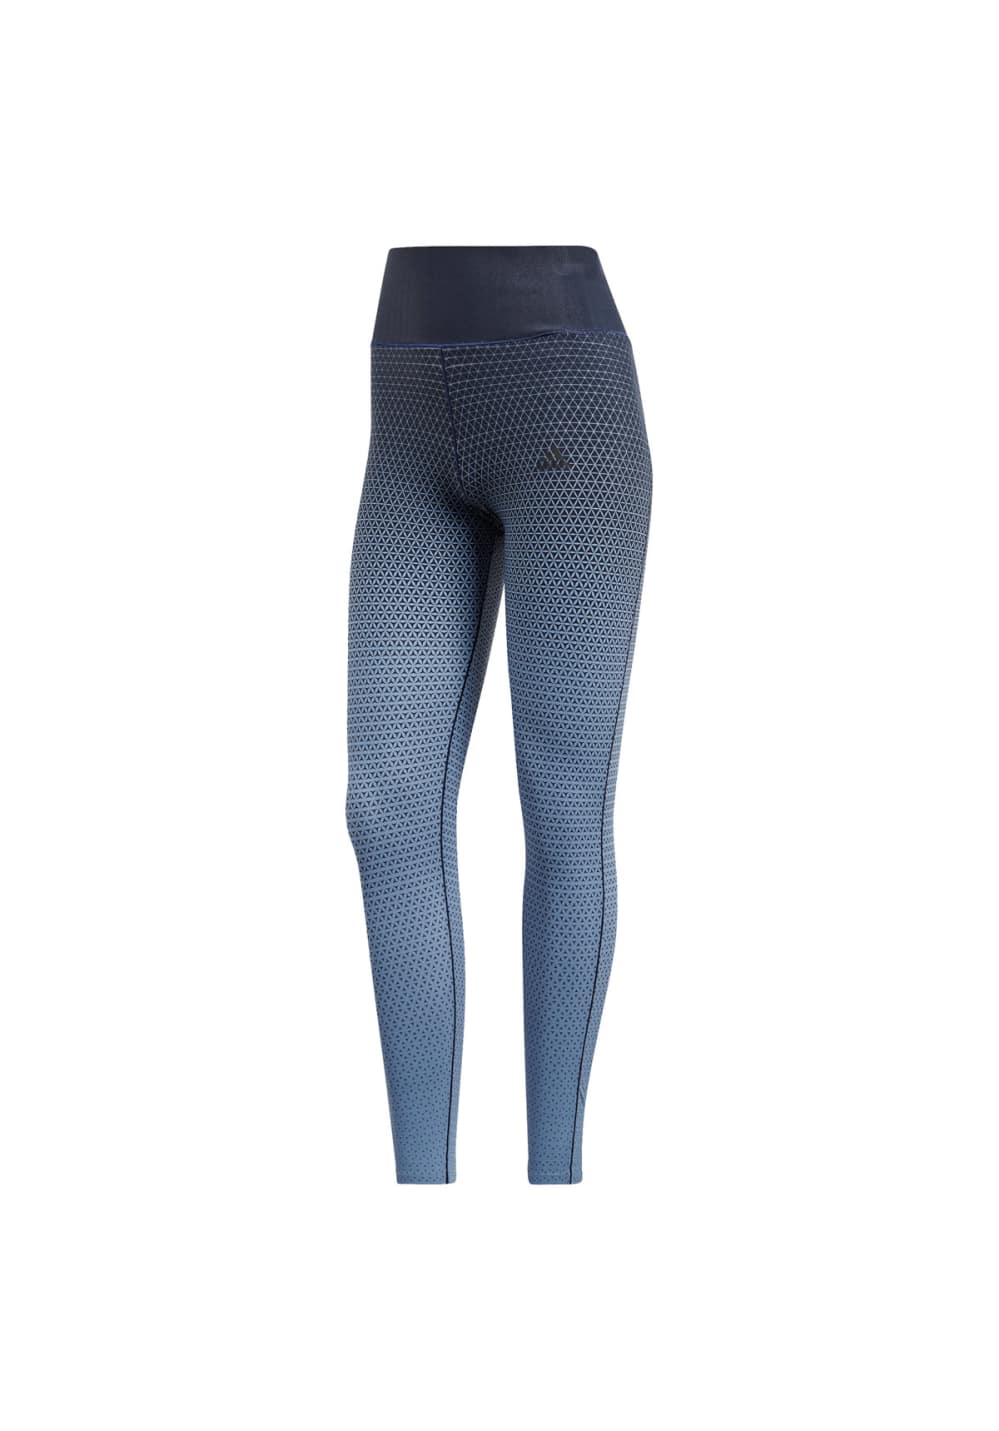 ad269137961 Next. adidas. Ultimate Miracle Sculpt Tight - Fitness trousers for Women